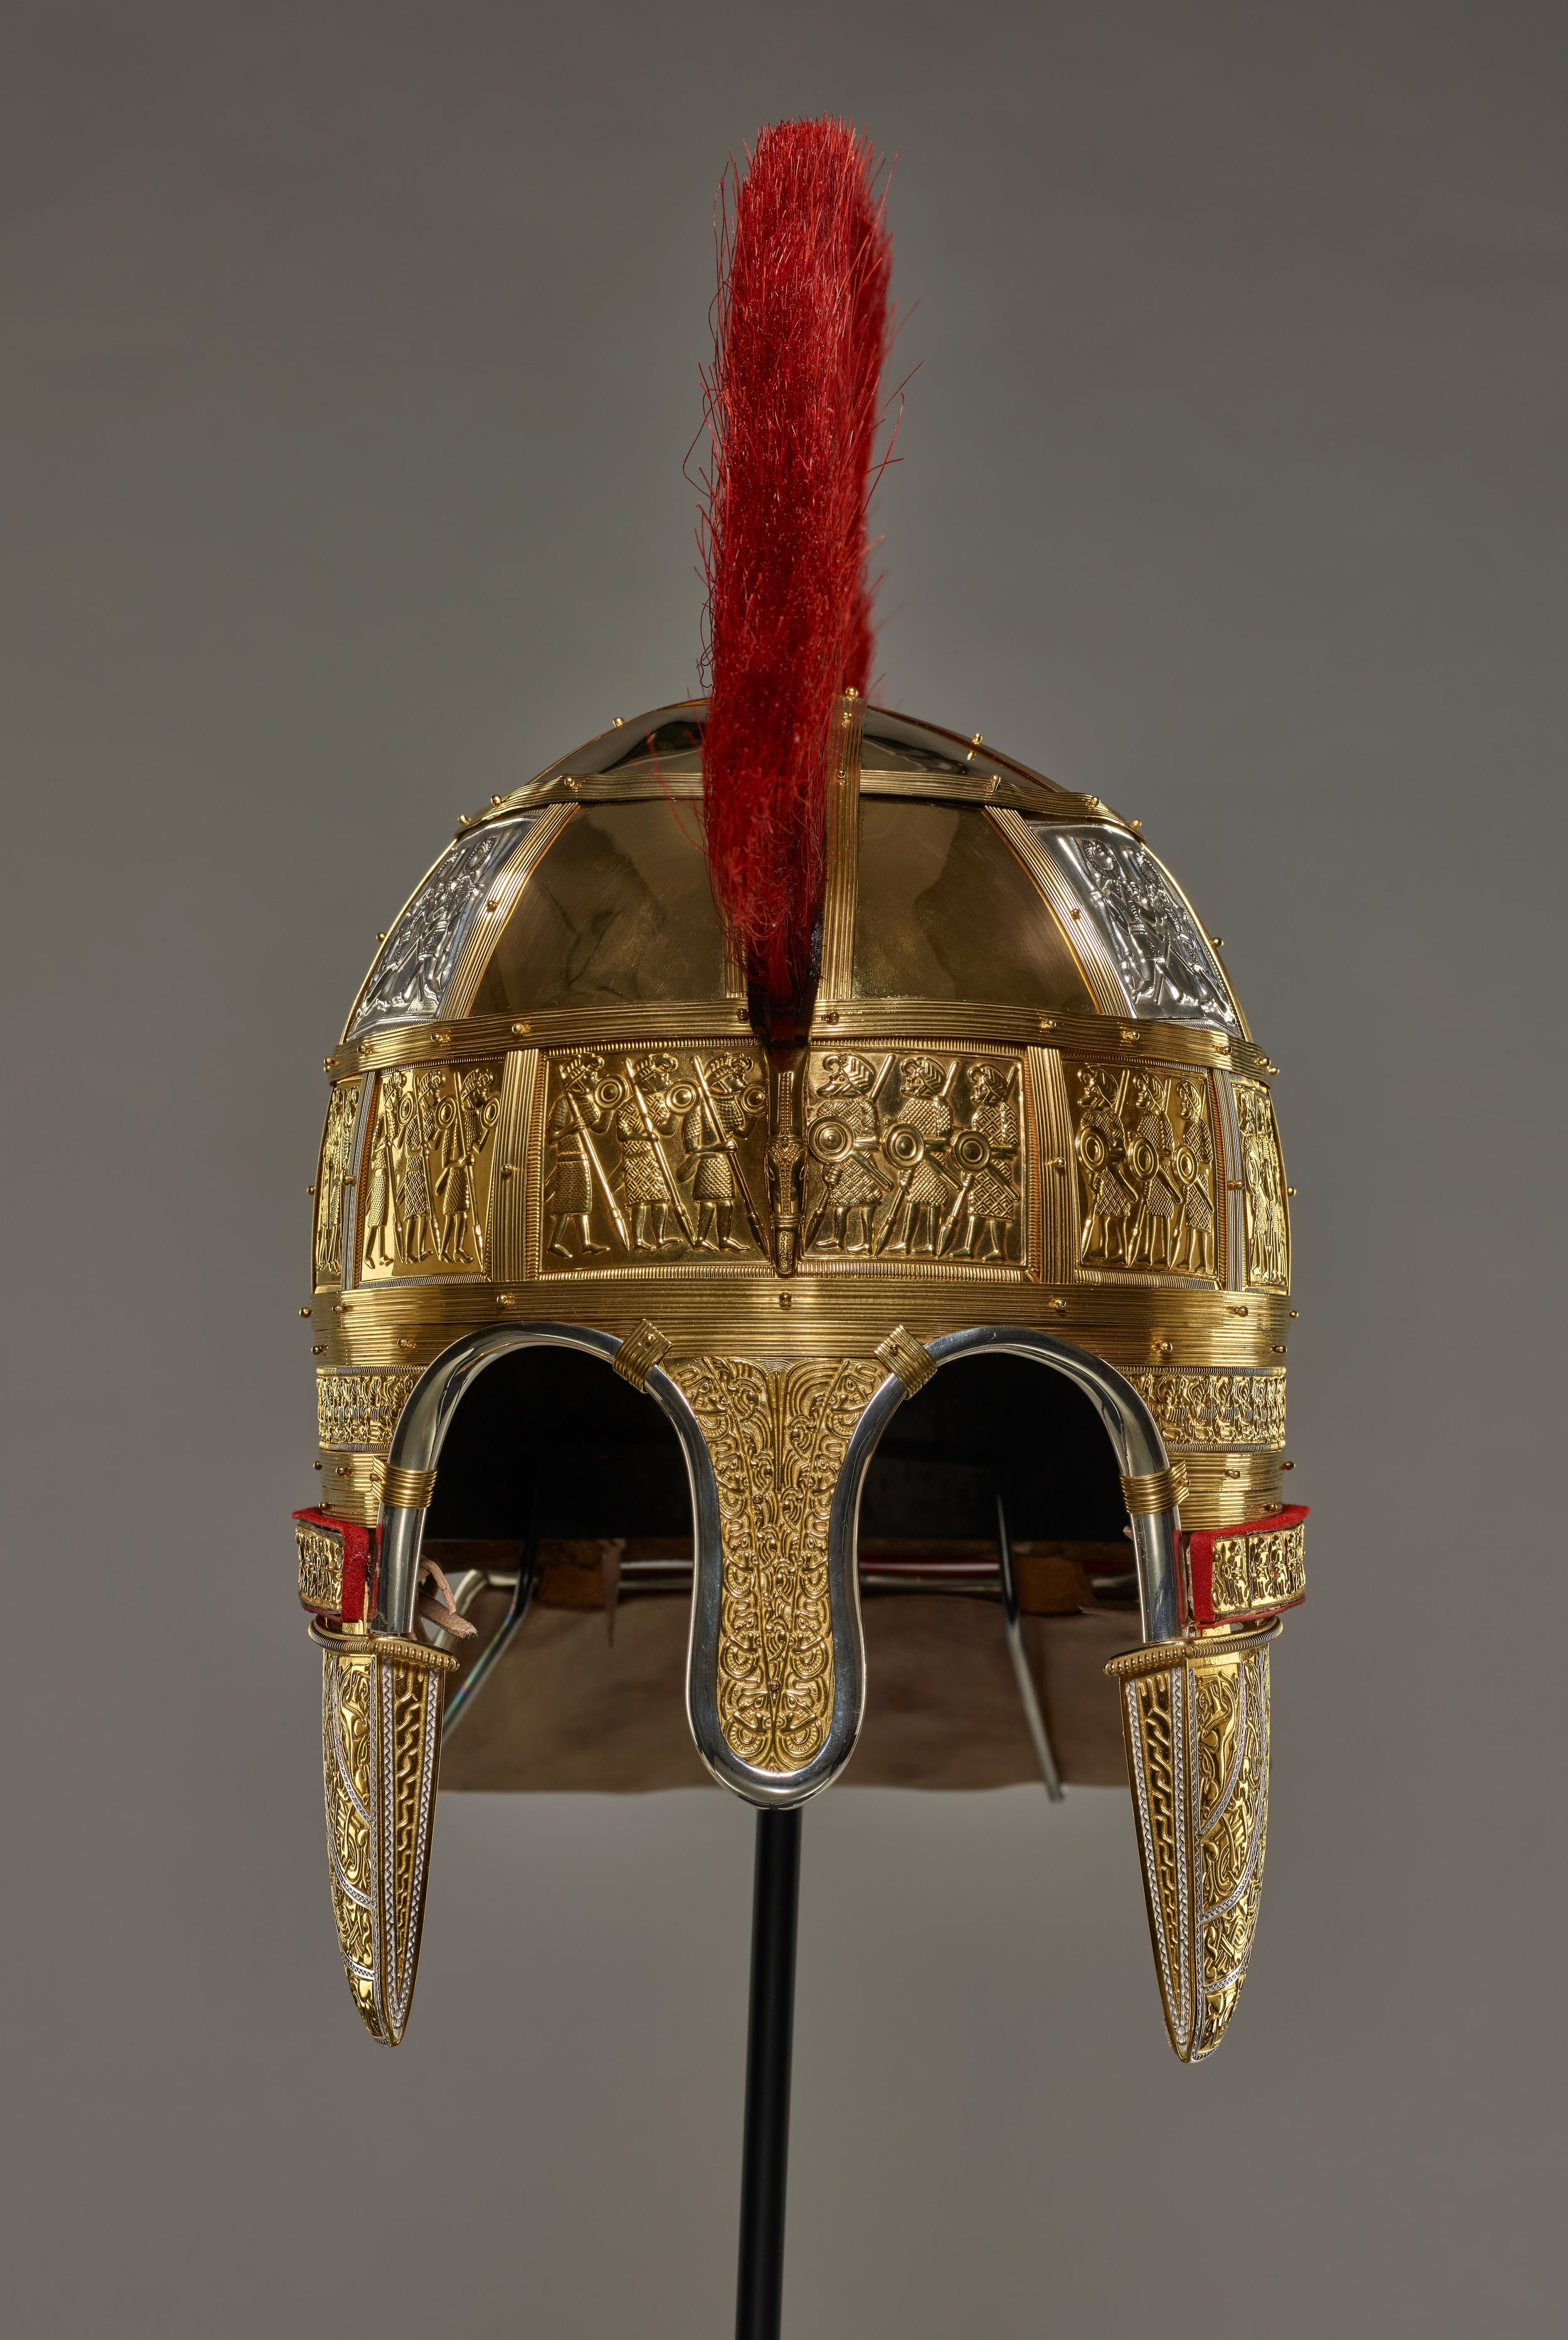 LOW RES Embargoed until 23-11-18 Staffordshire Hoard helmet reconstruction © Birmingham Museums Trust.jpg